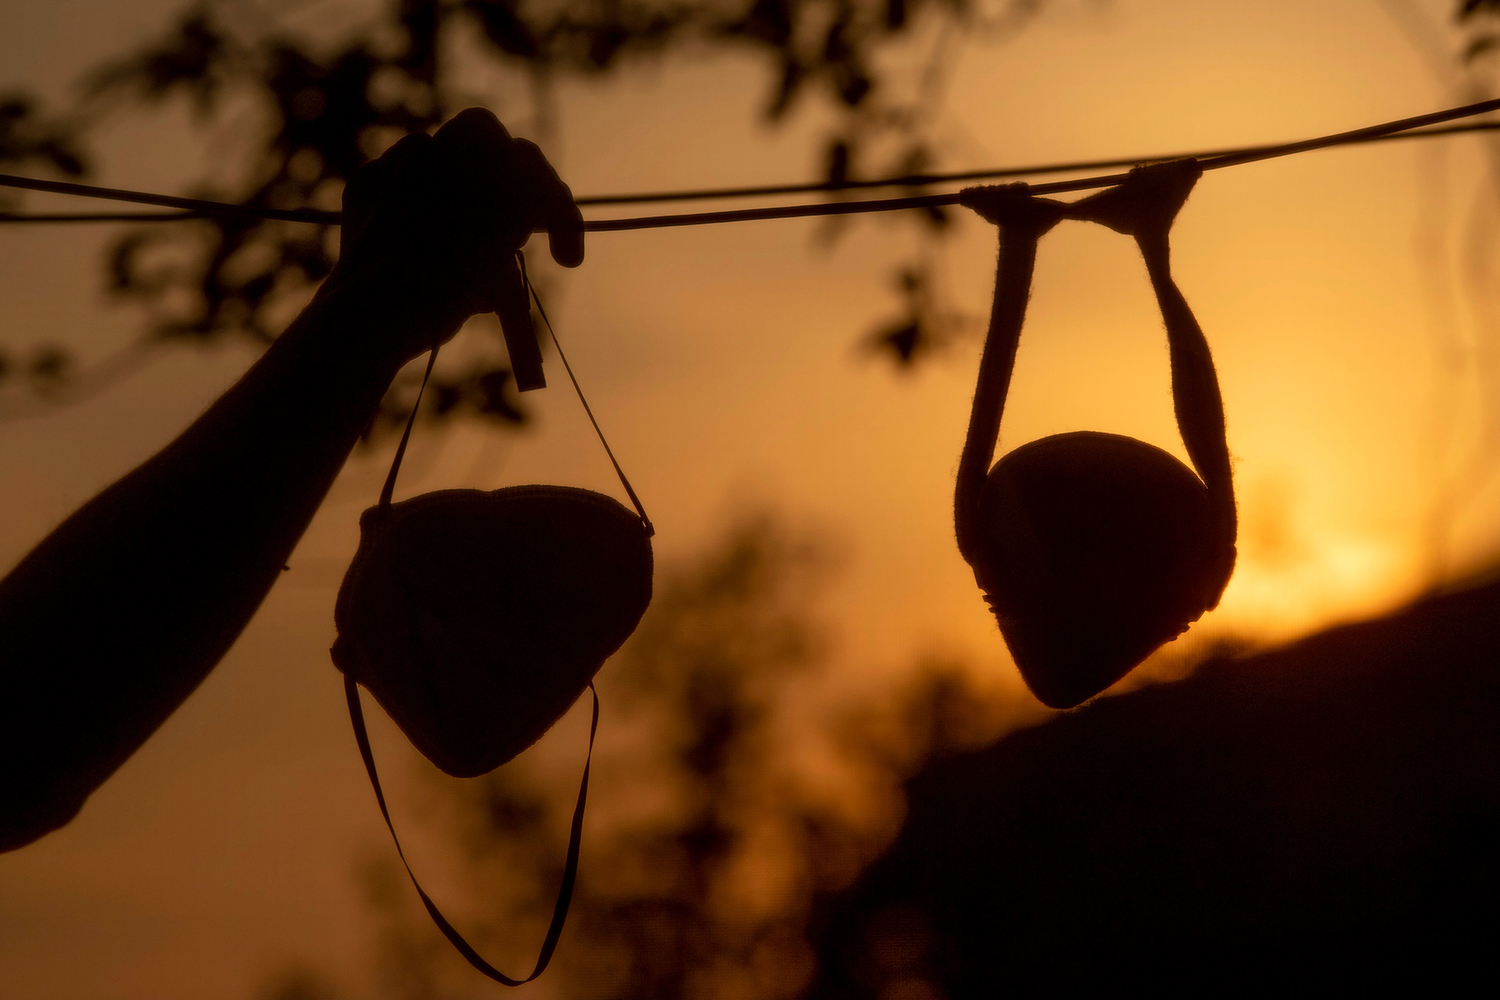 A resident hangs face masks up to dry on a clothesline in Rome on April 13. TIZIANA FABI/AFP via Getty Images